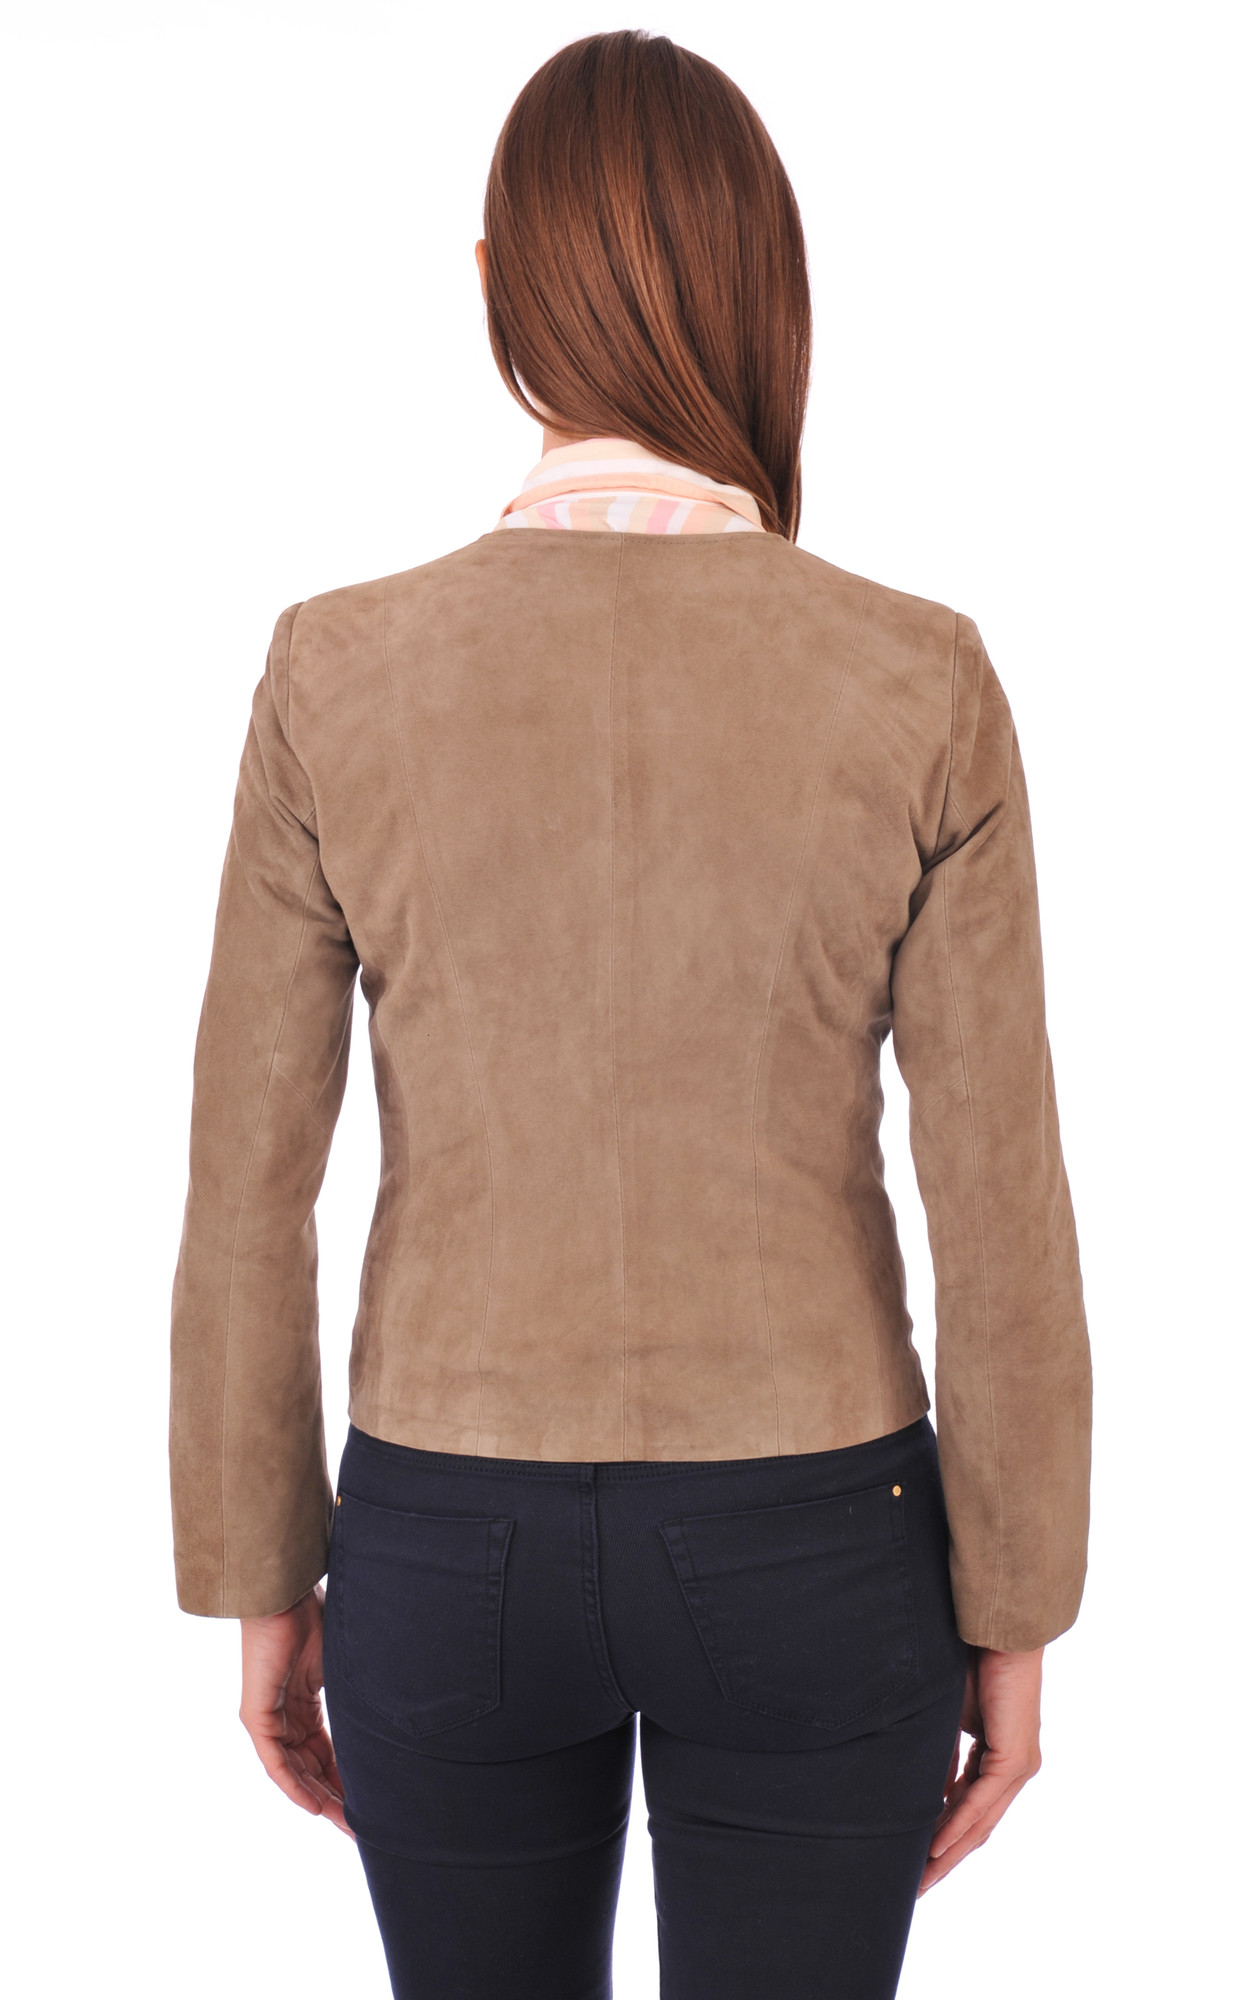 Blouson Aspect Daim Taupe Coupe Spencer